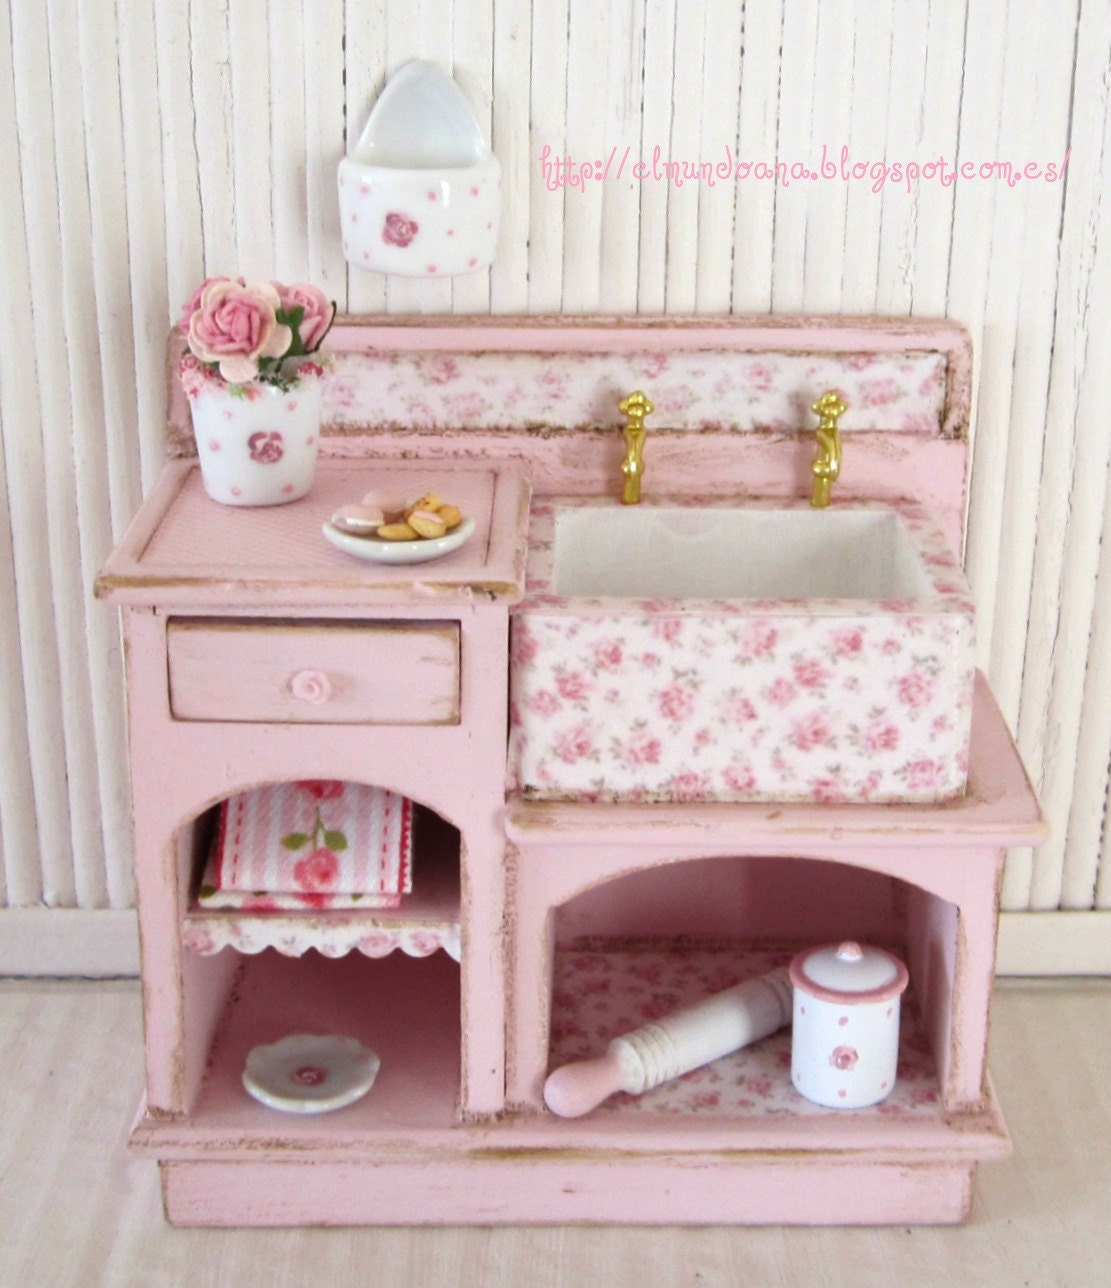 Amazoncom PLAN TOYS Dollhouse Furniture  Neo Bathroom